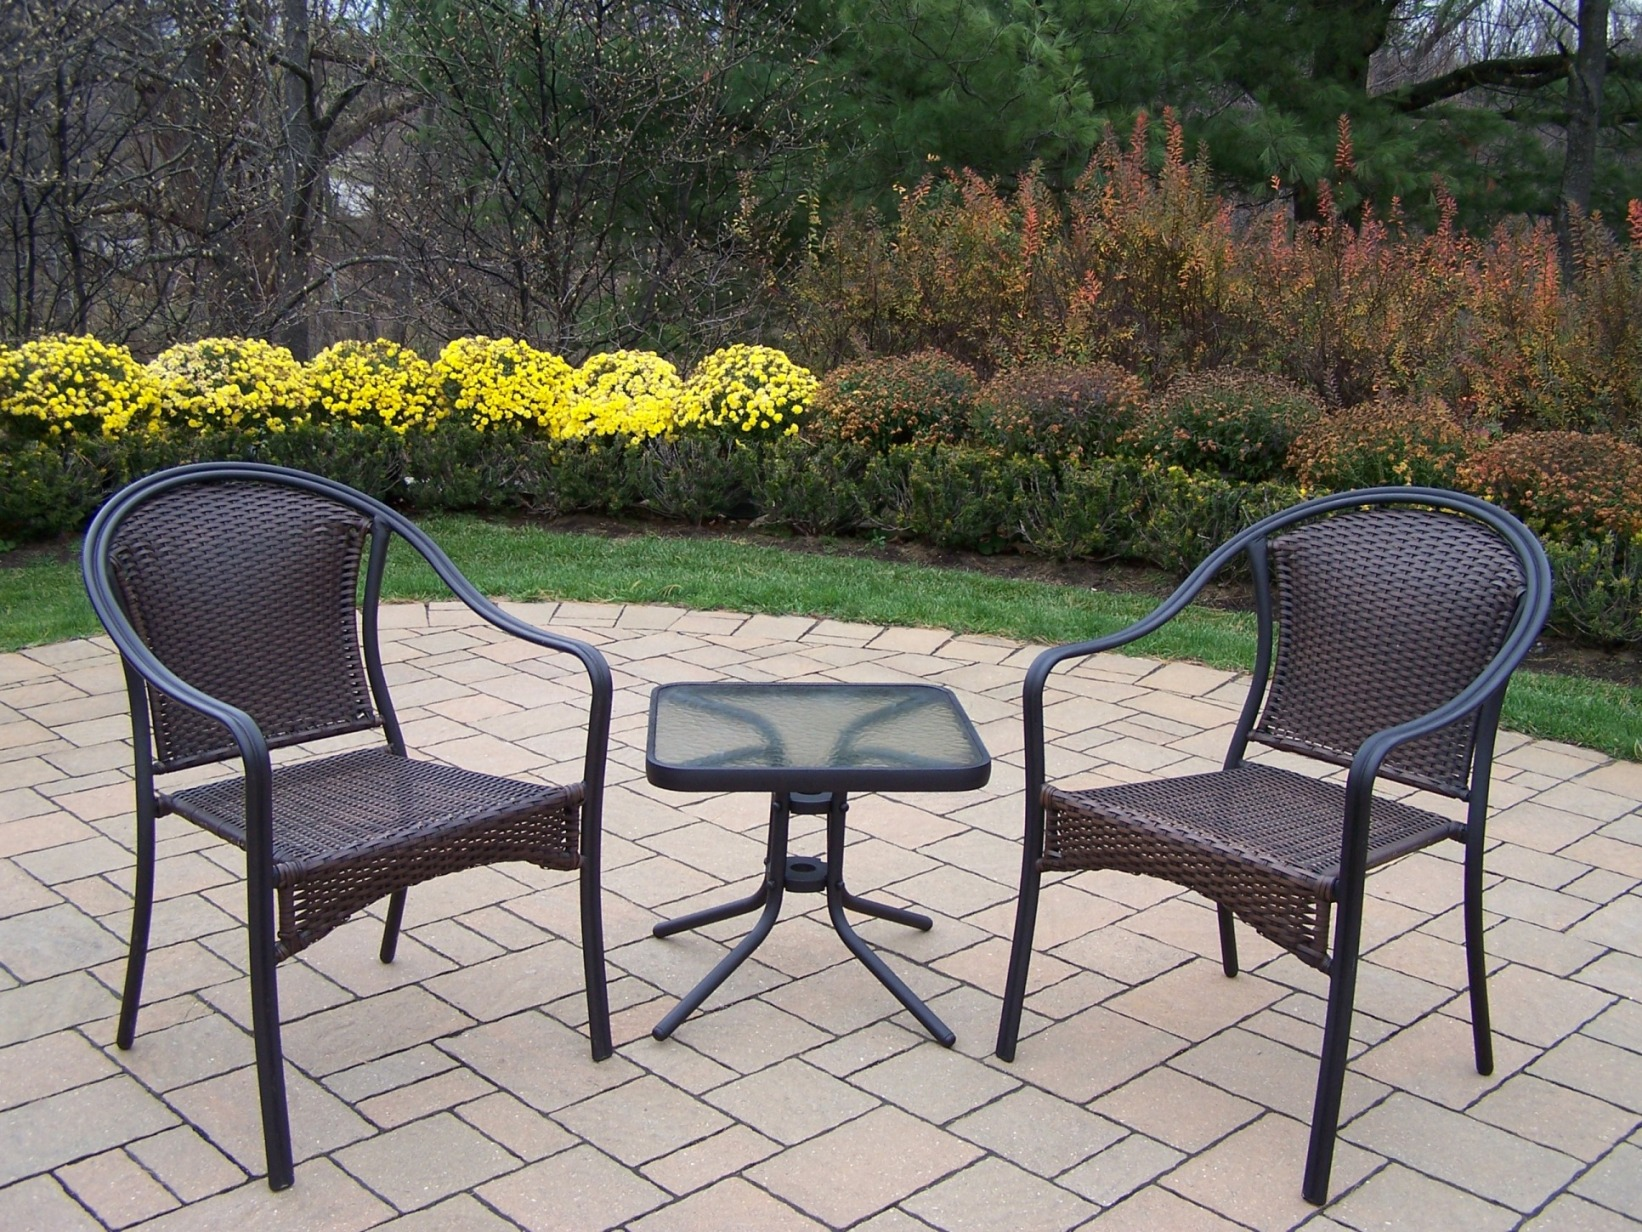 outdoor chairs kmart set of 4 dining resin wicker patio furniture